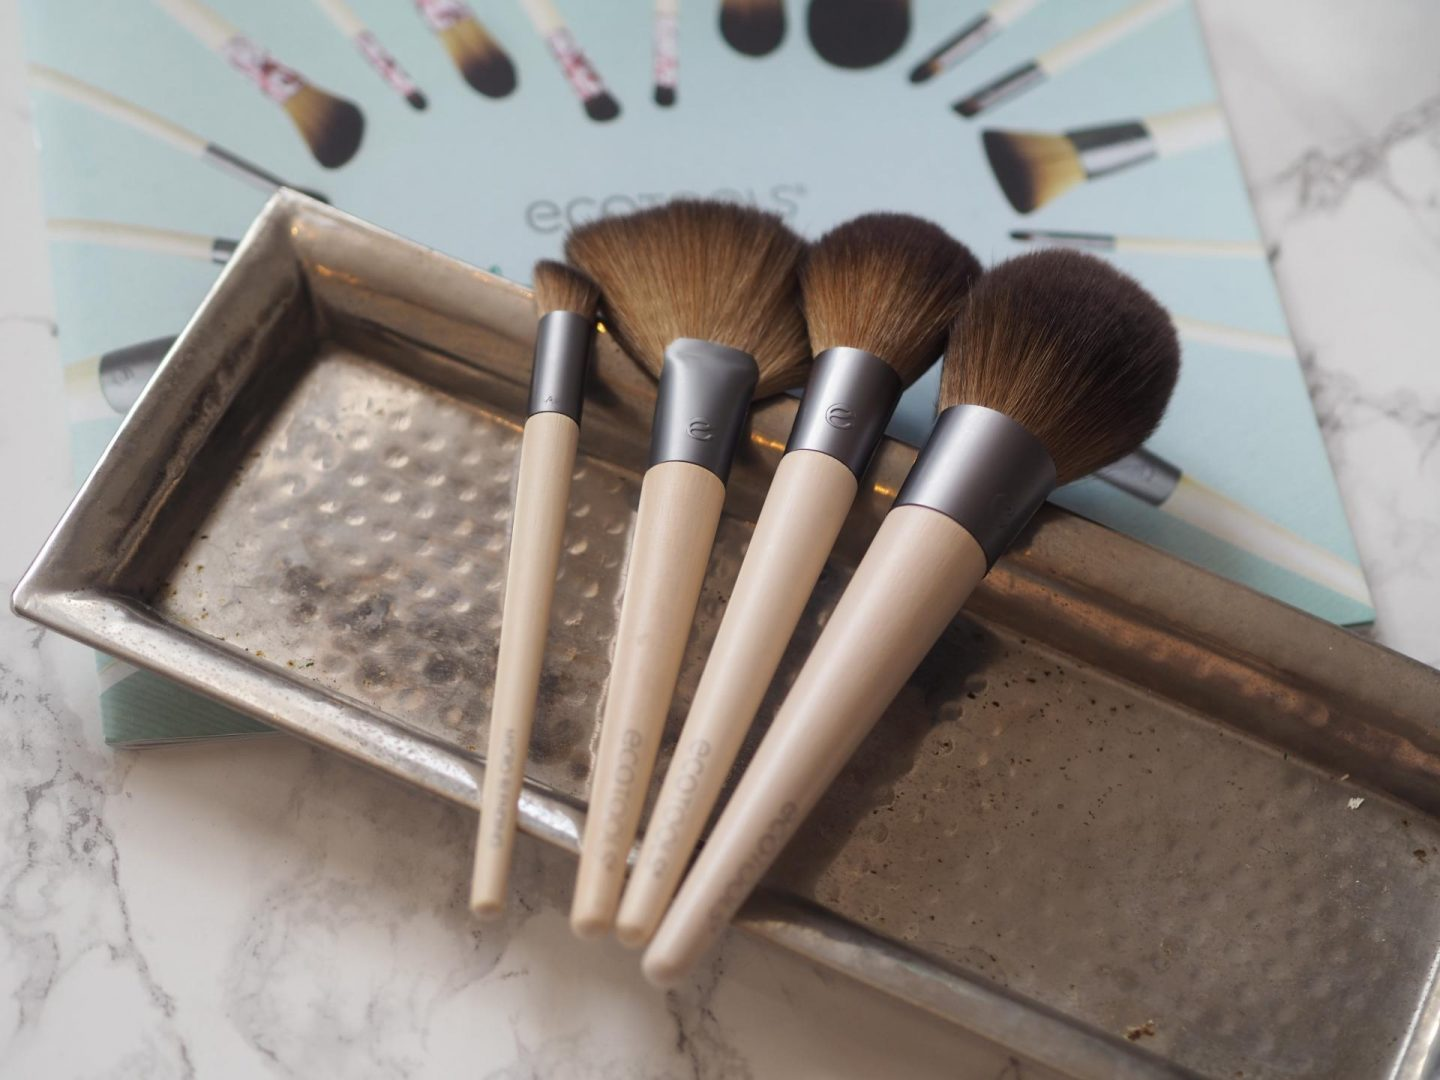 ecotools best drugstore beauty buys